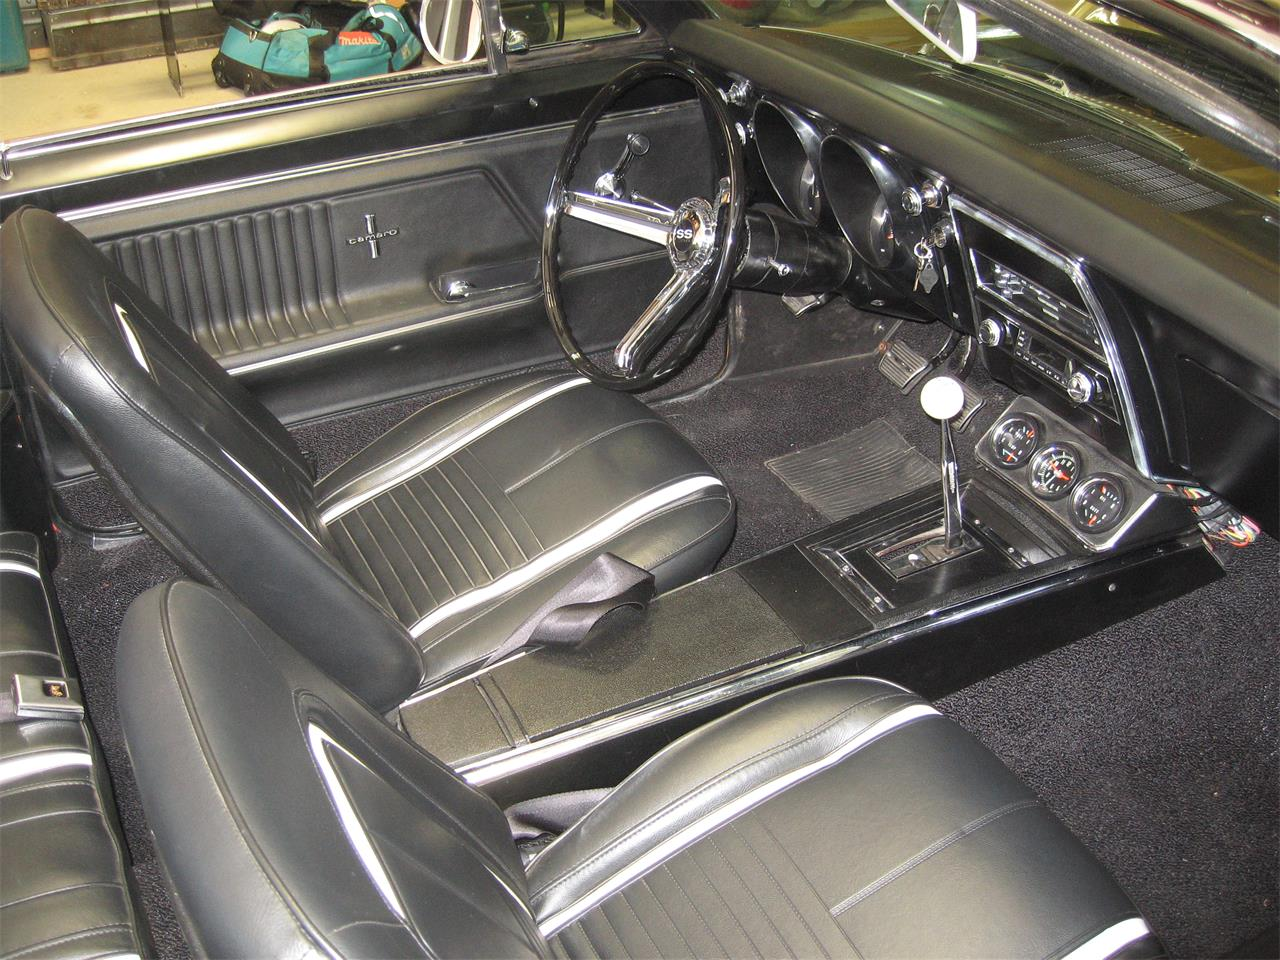 Large Picture of Classic '67 Camaro RS/SS - $39,900.00 Offered by a Private Seller - Q2Z6